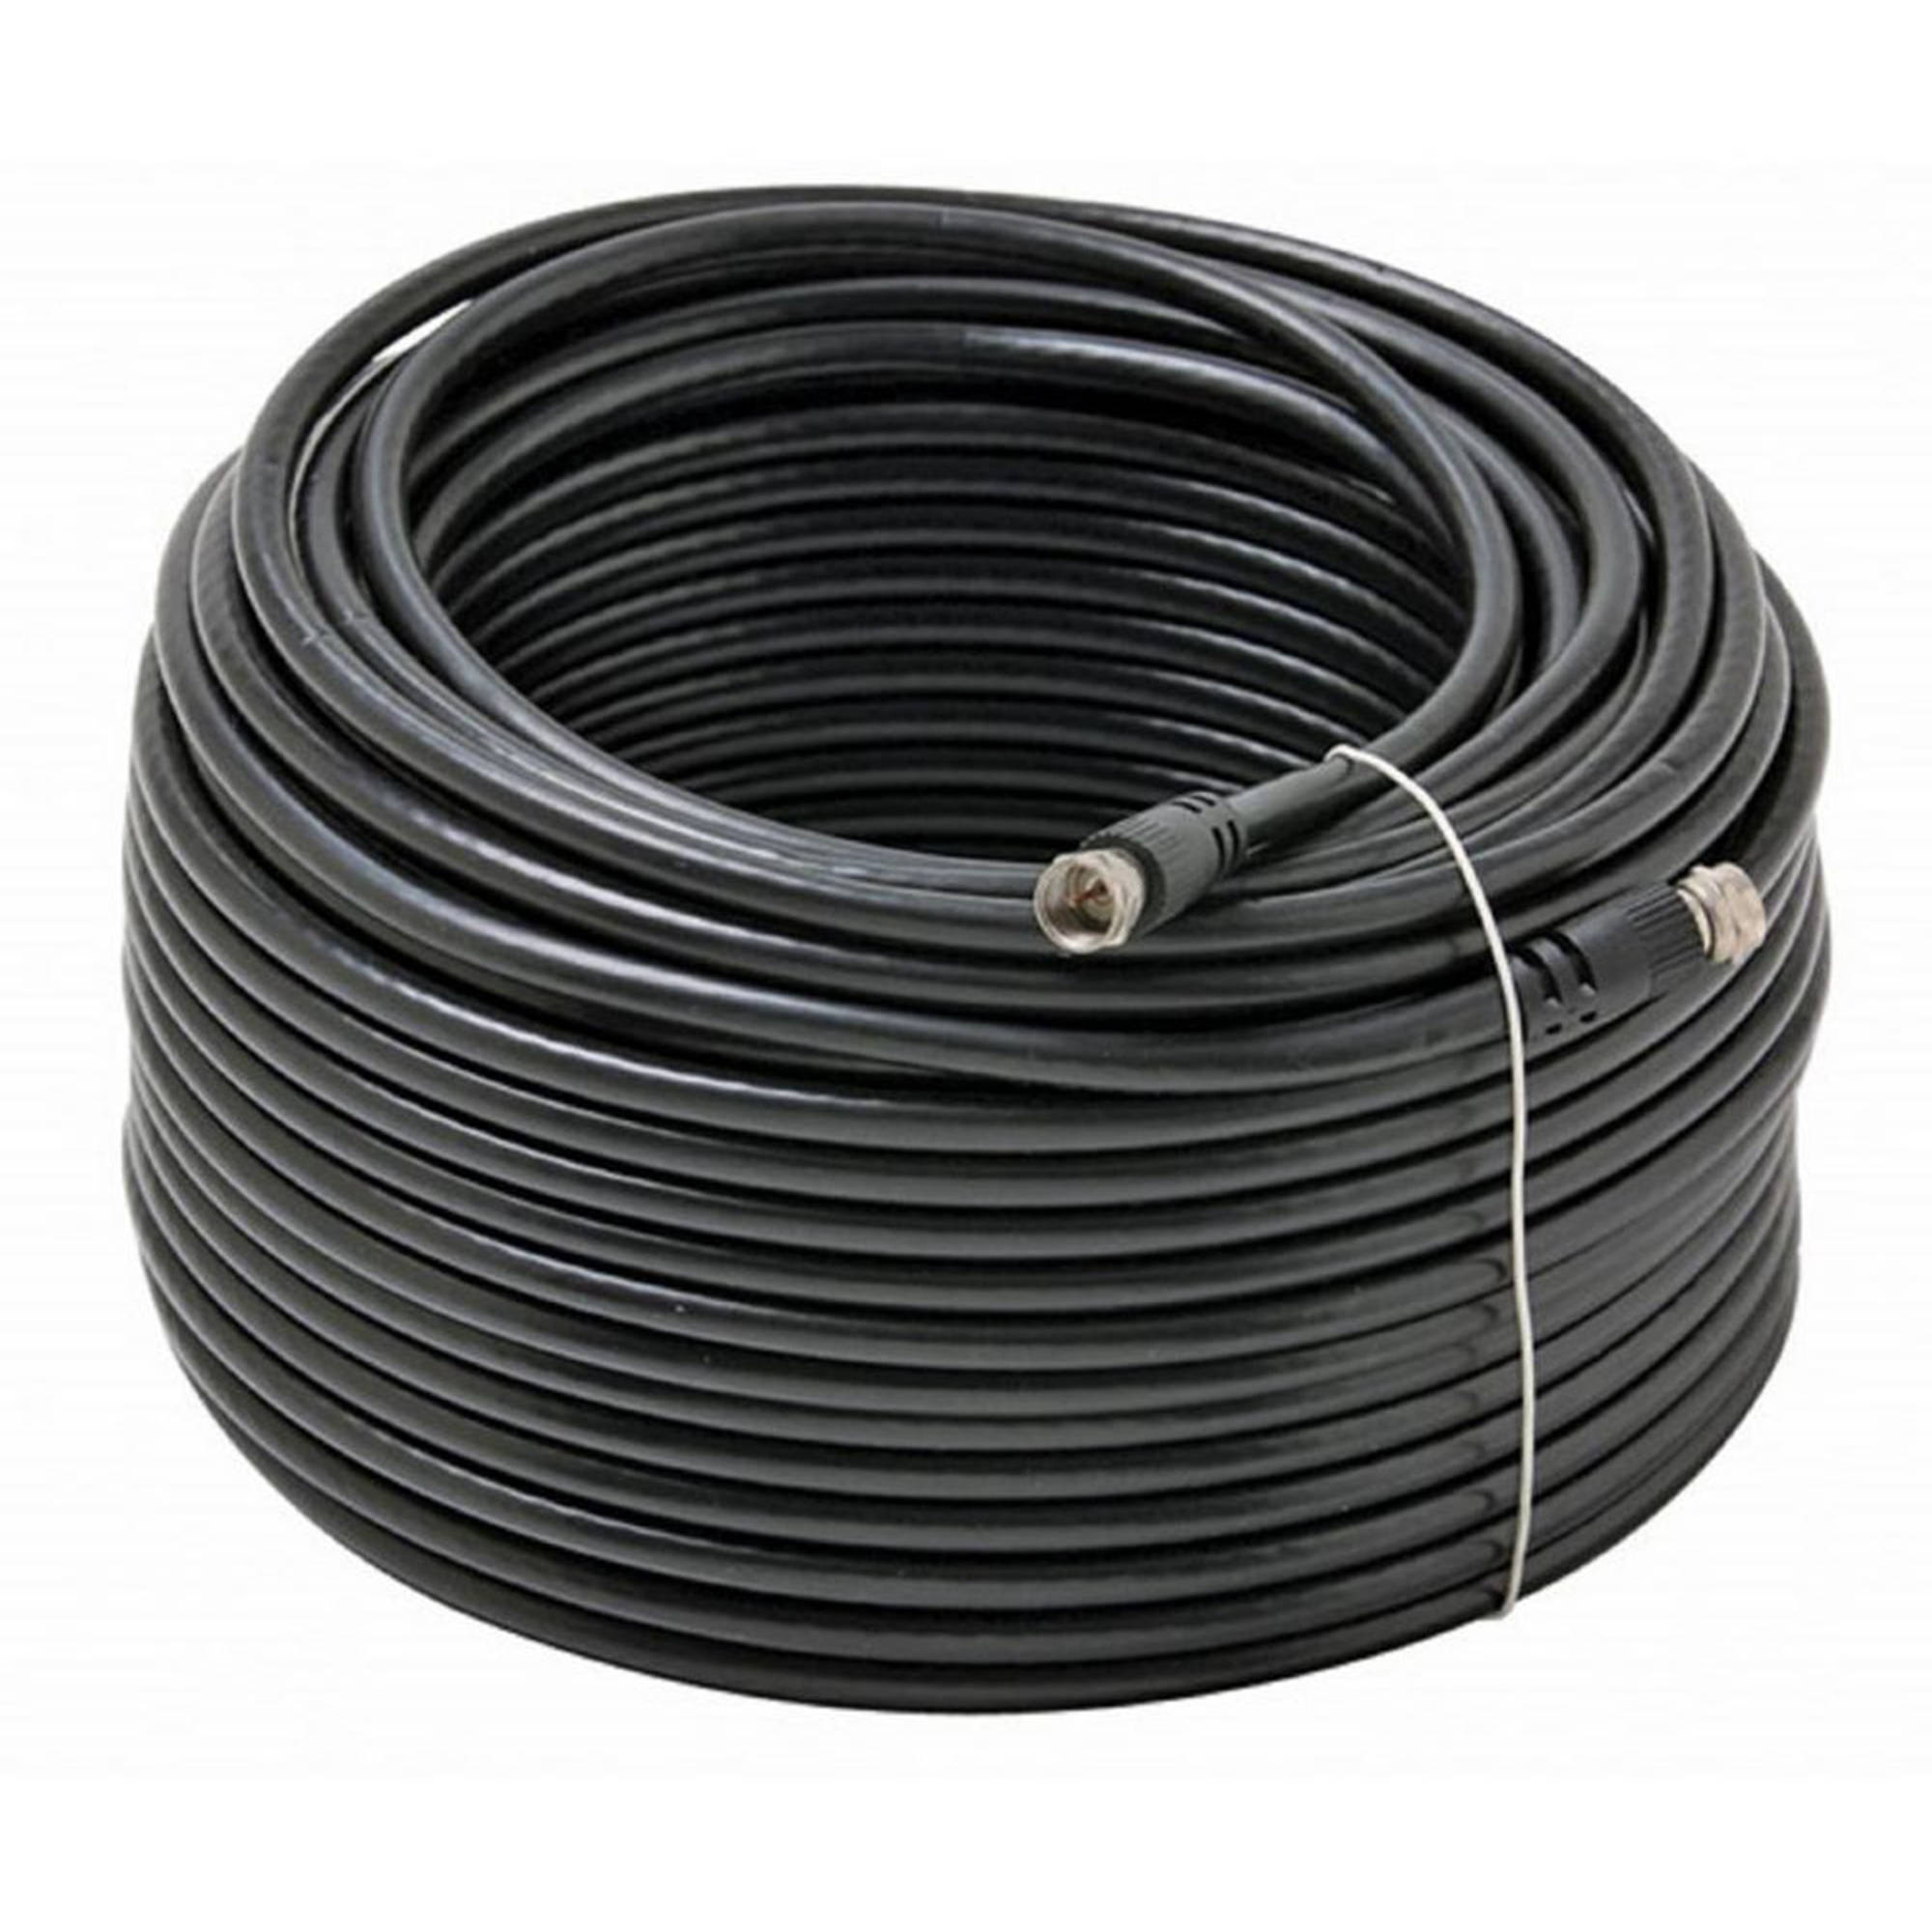 Digiwave RG6 500' Coaxial Cable, Black, RG611500B